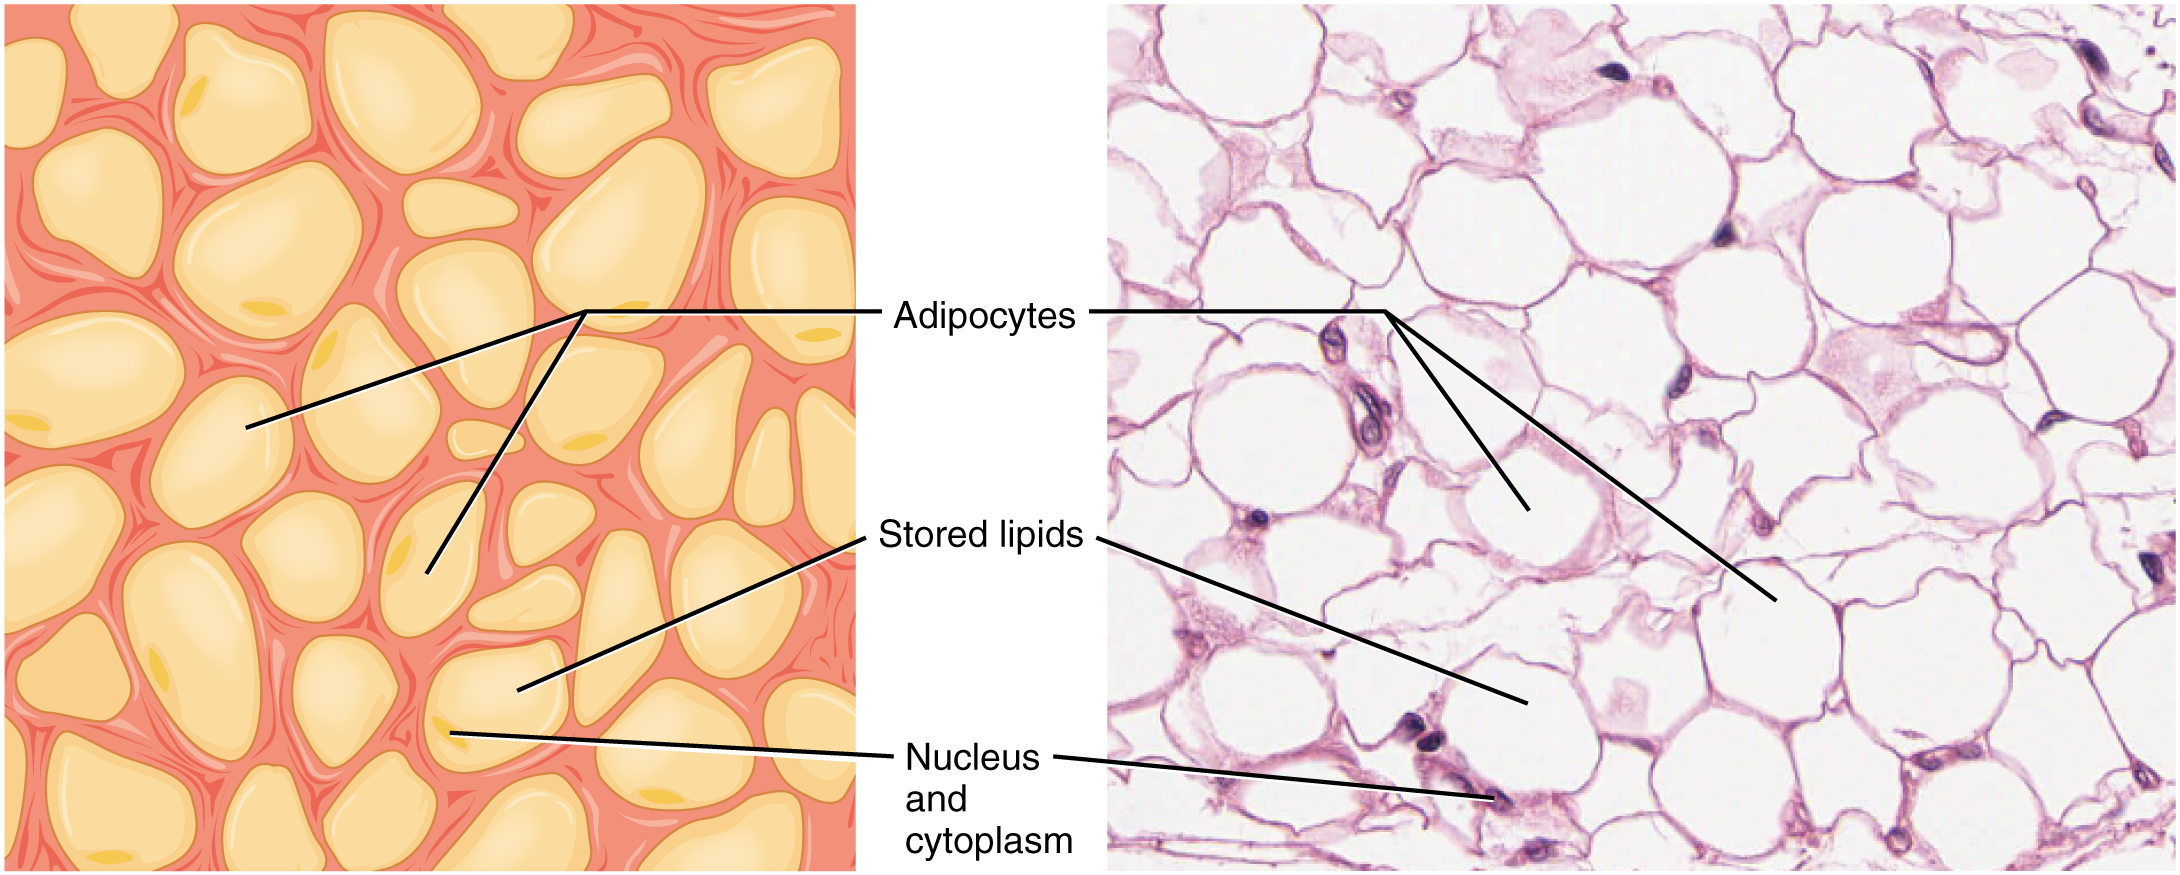 Popup moreover 24291 additionally The Use Of Confocal Laser Microscopy To Analyze Mouse Retinal Blood Vessels together with File 409 Adipose Tissue together with Adrenal Glands. on in capillaries